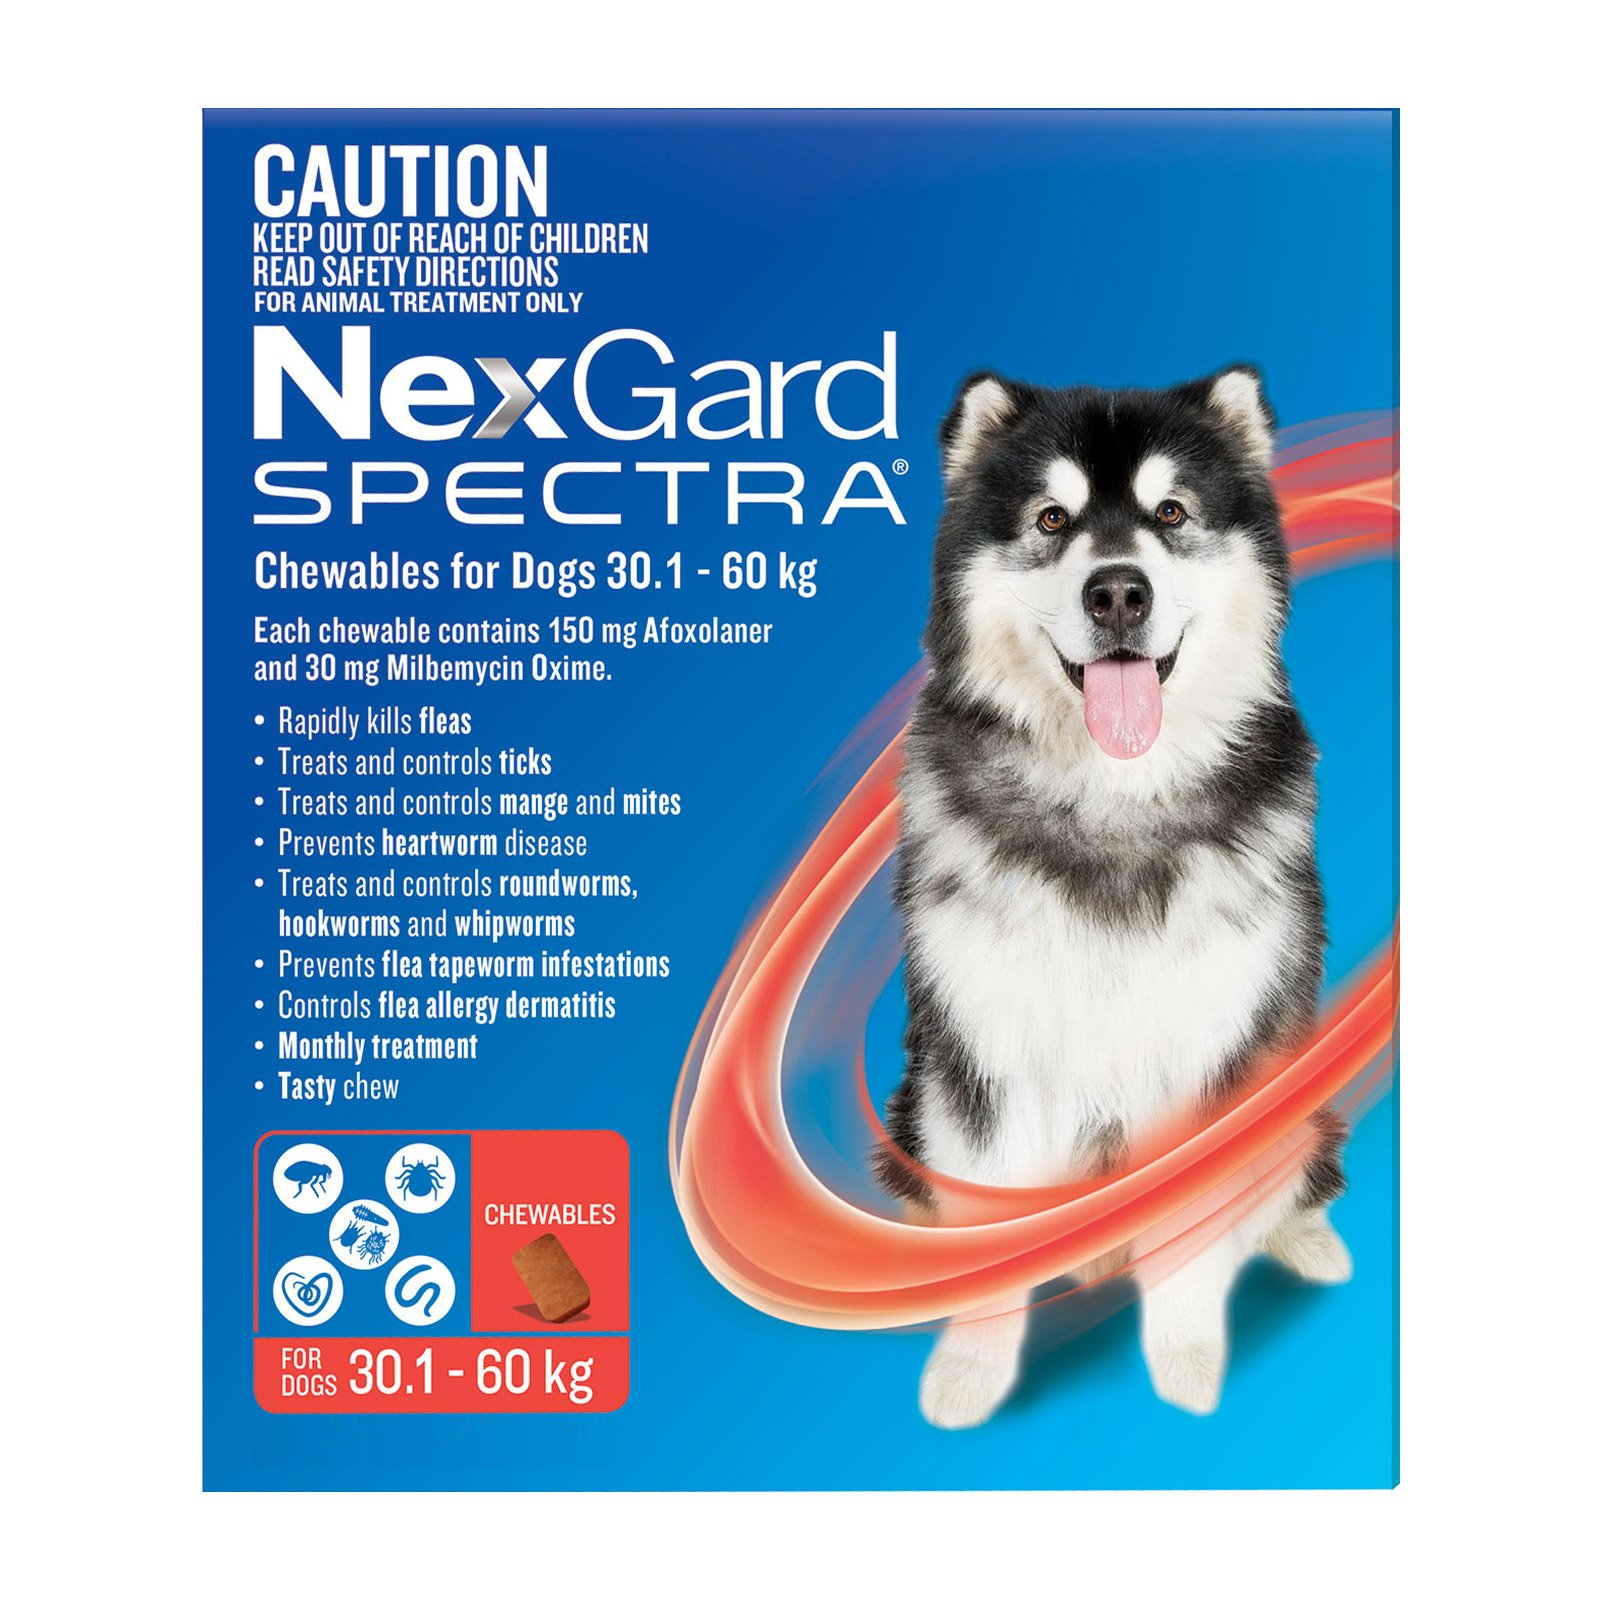 Nexgard Spectra Extra Large Dogs (30.1-60kg) Red